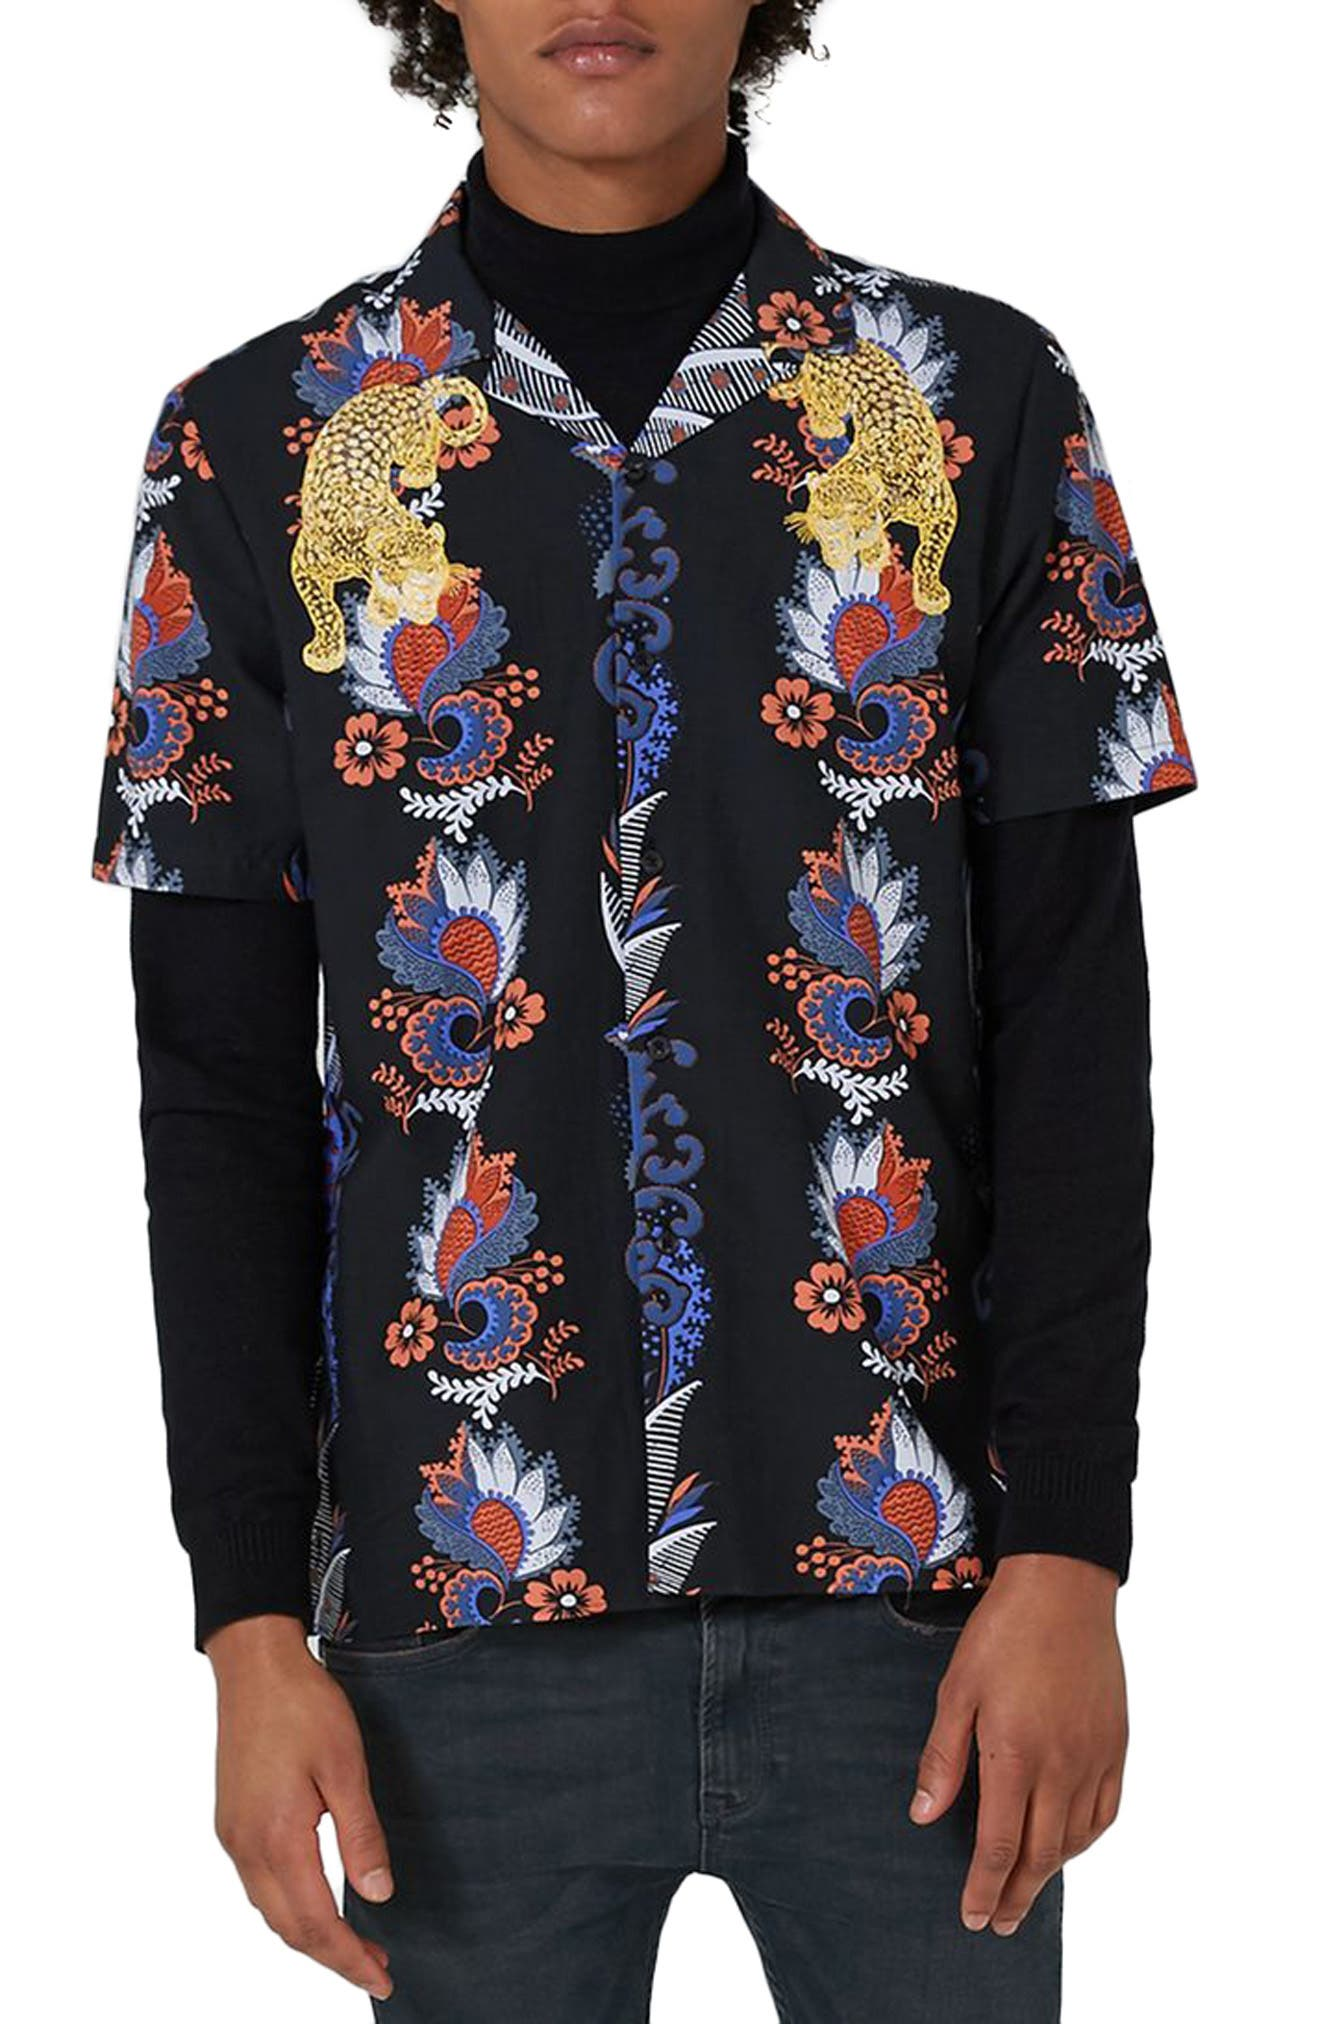 Embroidered Tiger Print Revere Collar Shirt,                             Main thumbnail 1, color,                             Black